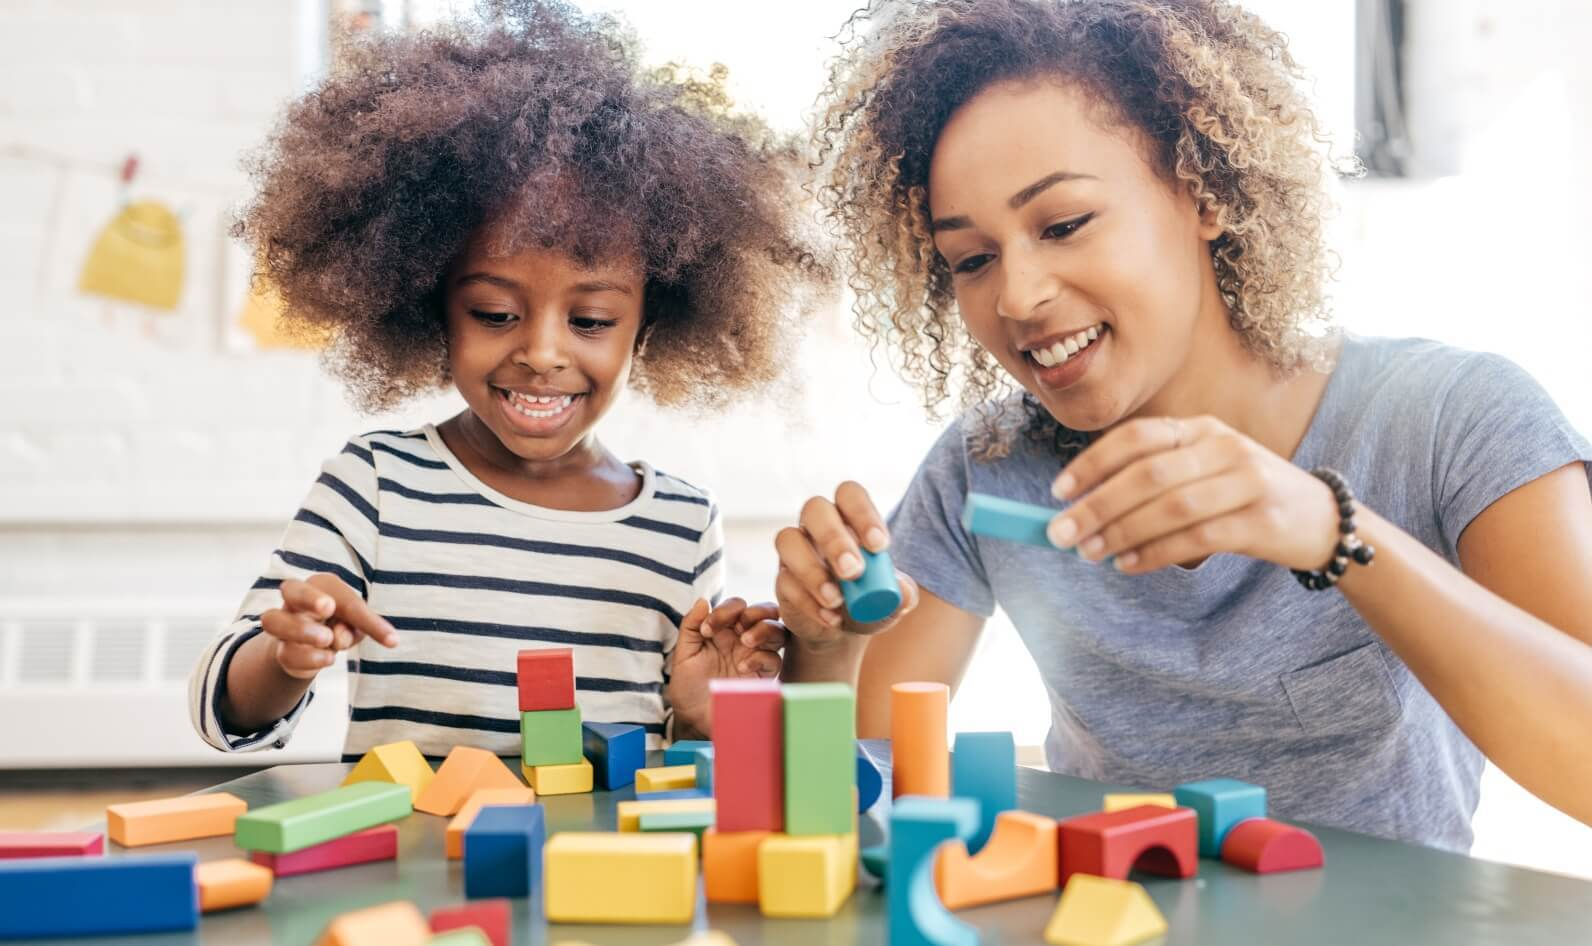 Choosing Toys to Grow With Your Preschooler  …   PBS KIDS for Parents